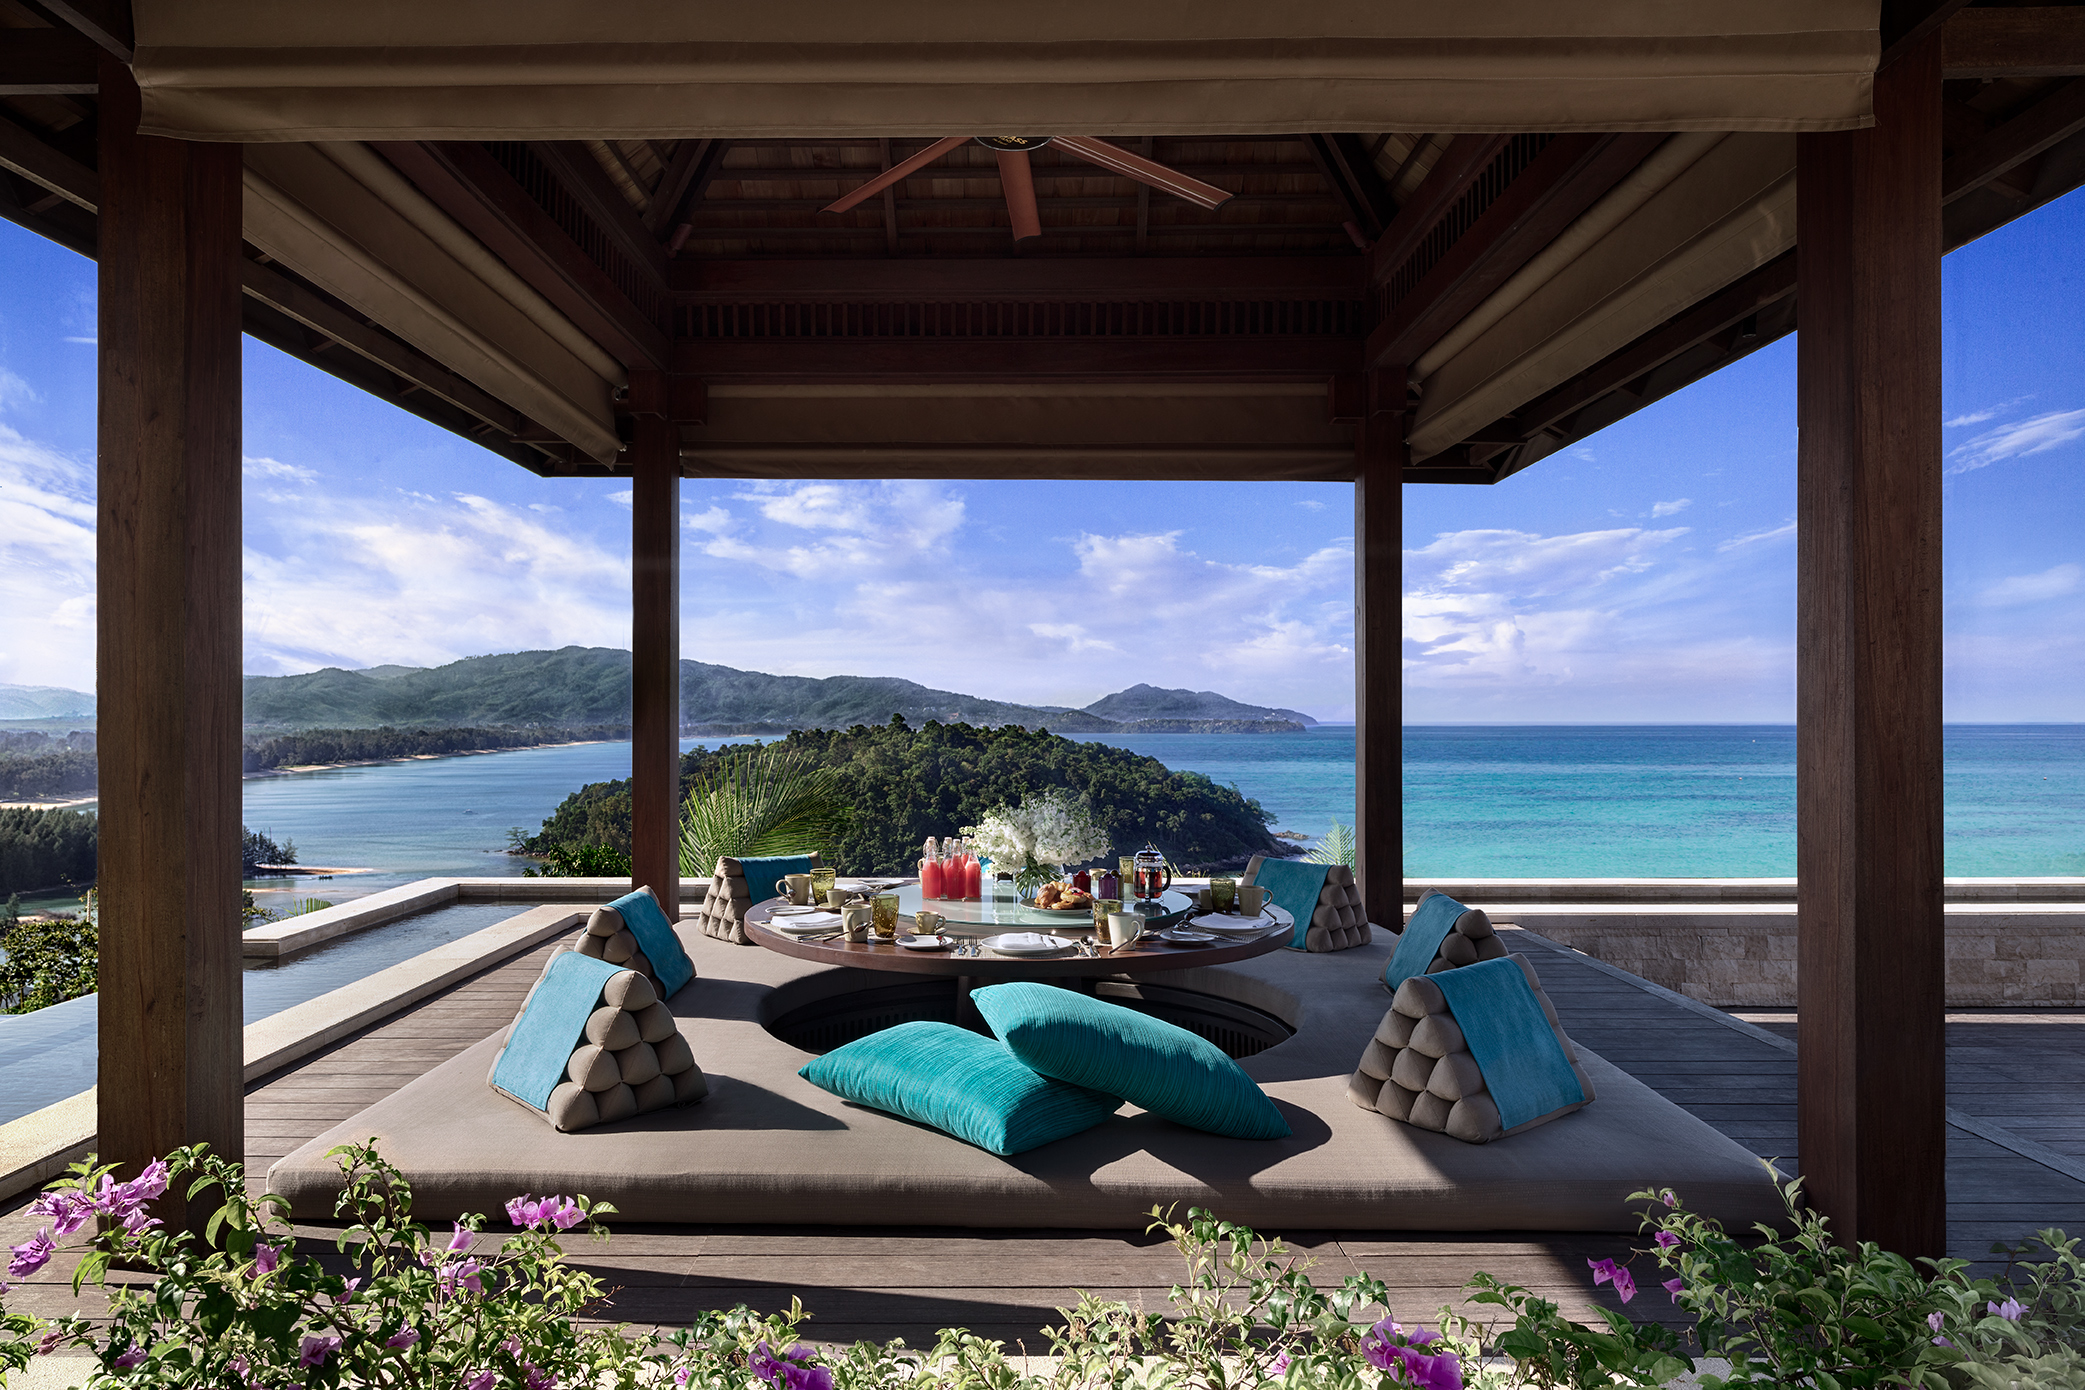 Similan villa, Anantara layan phuket, sea view, sala, island view, thai pillows, cushion, terrace